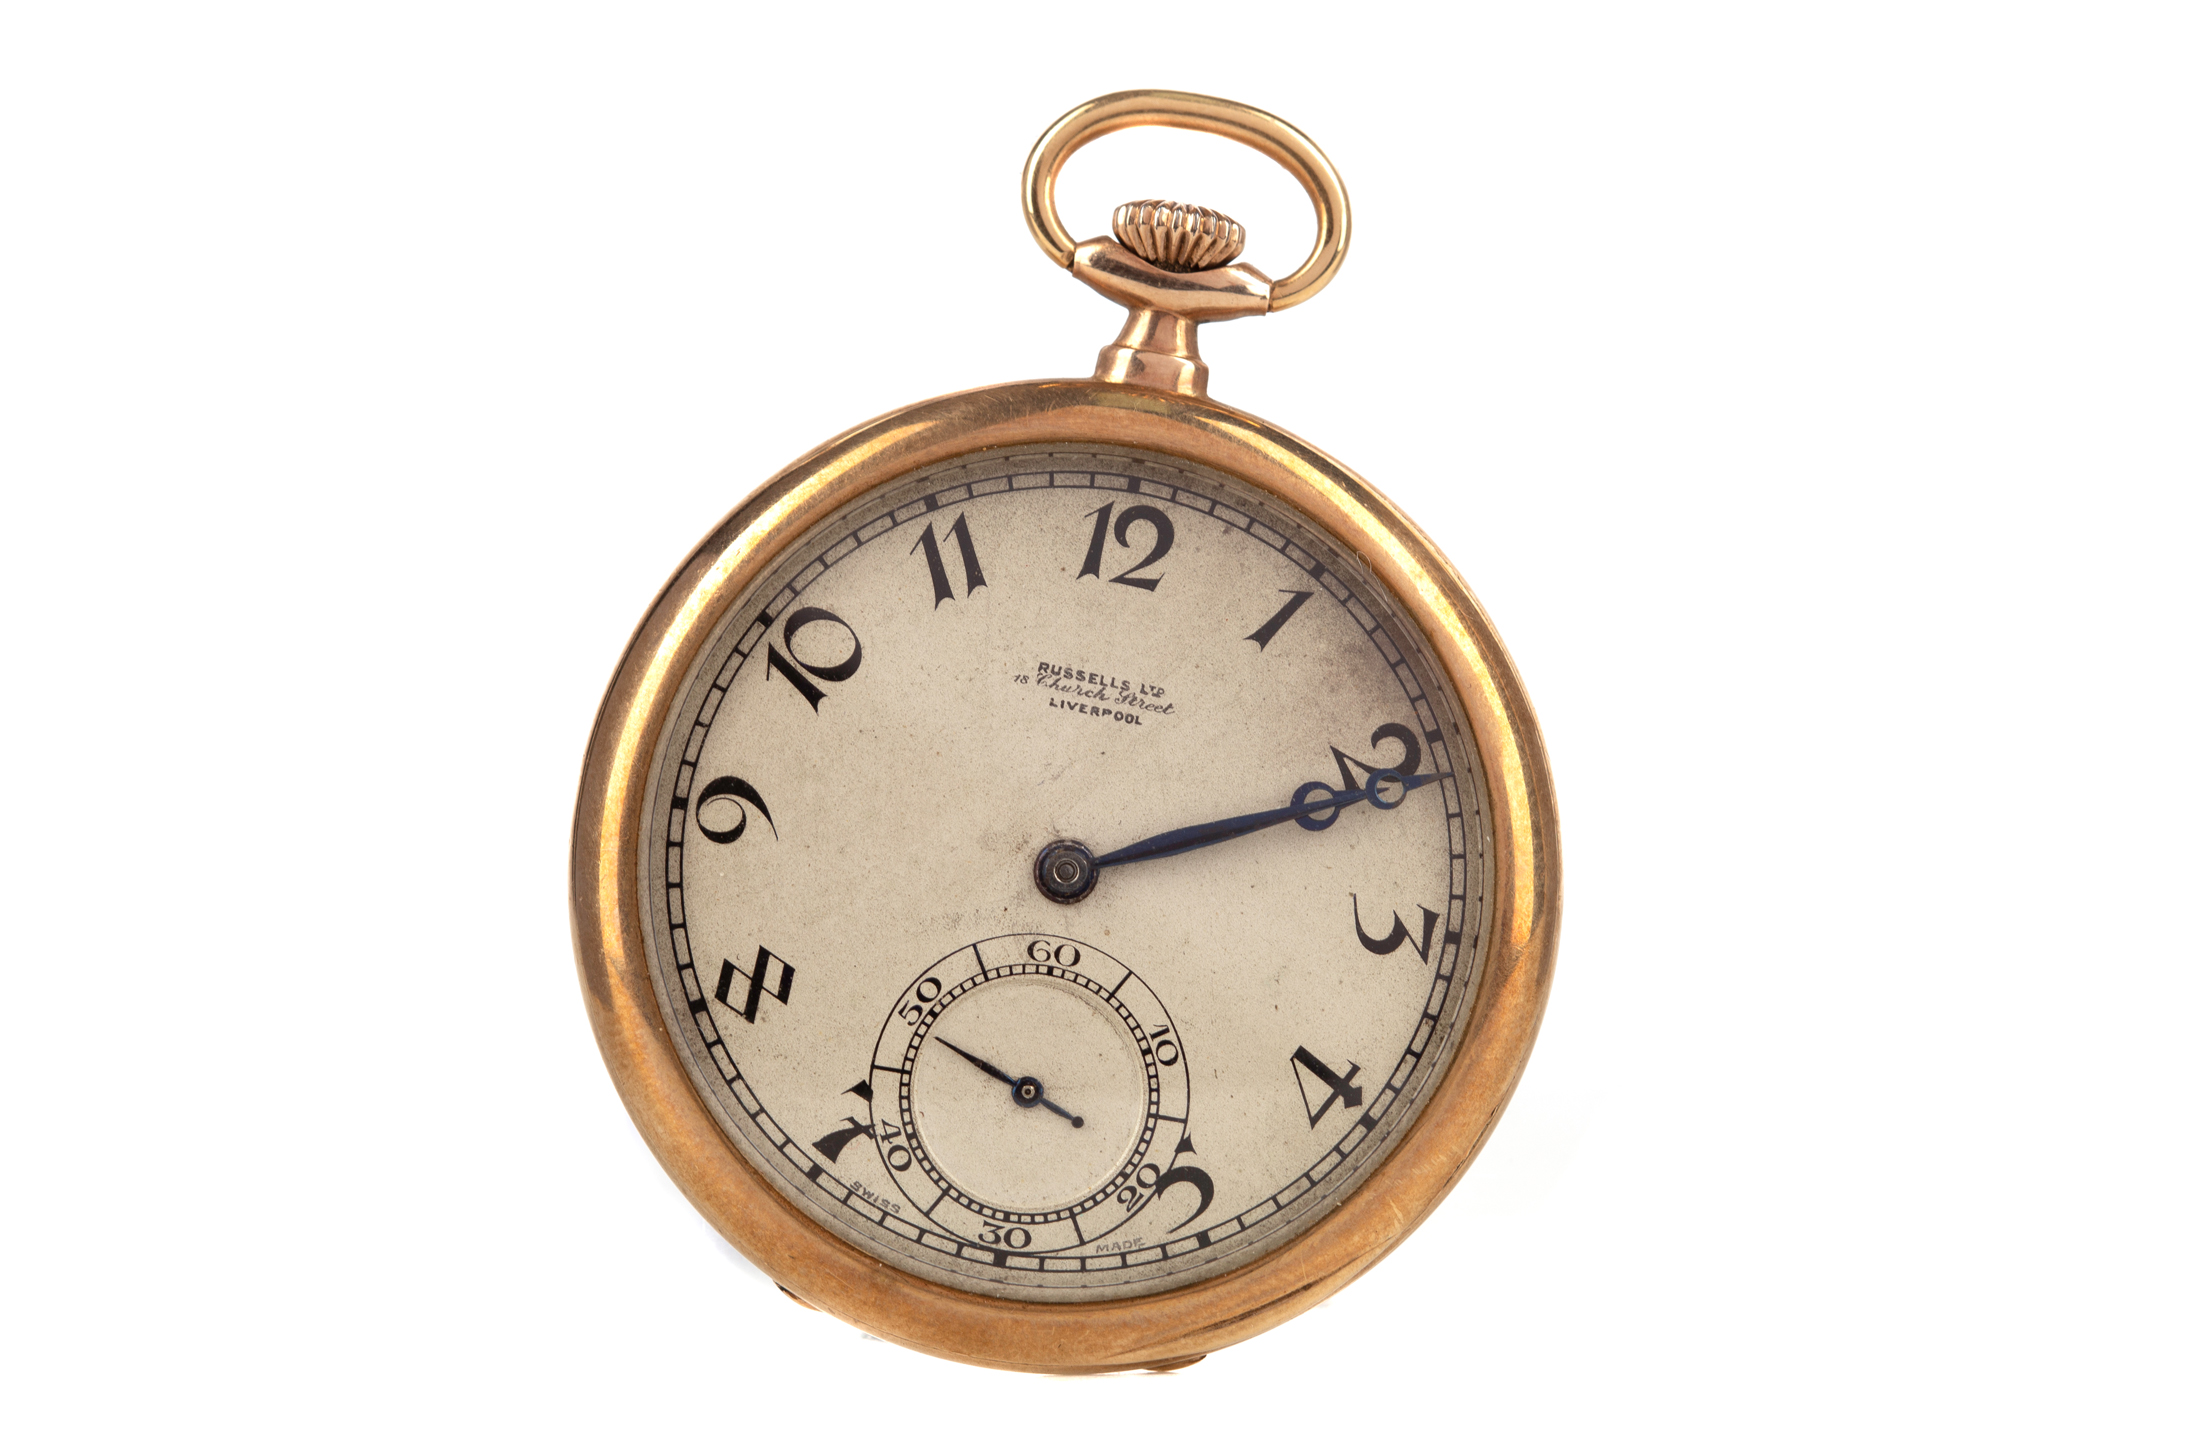 ROLEX CASED OPEN FACE POCKET WATCH, the round silver coloured dial signed 'Russells LTD, 18 Church